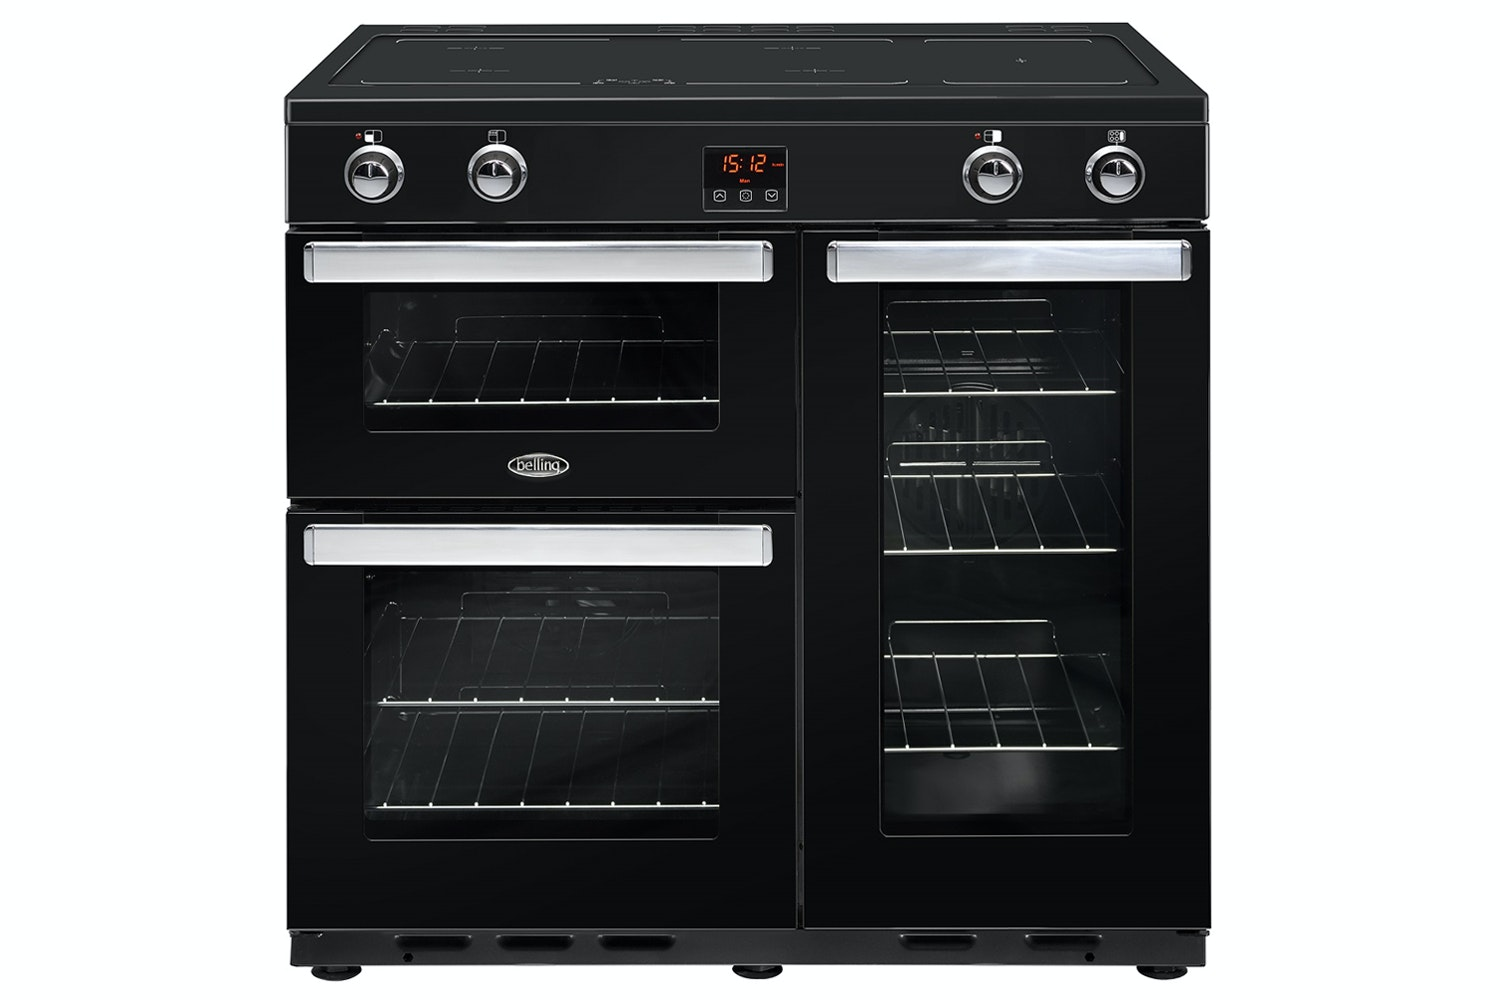 Belling Cookcenter 90cm Induction Range Cooker | 90EIBLK | Black